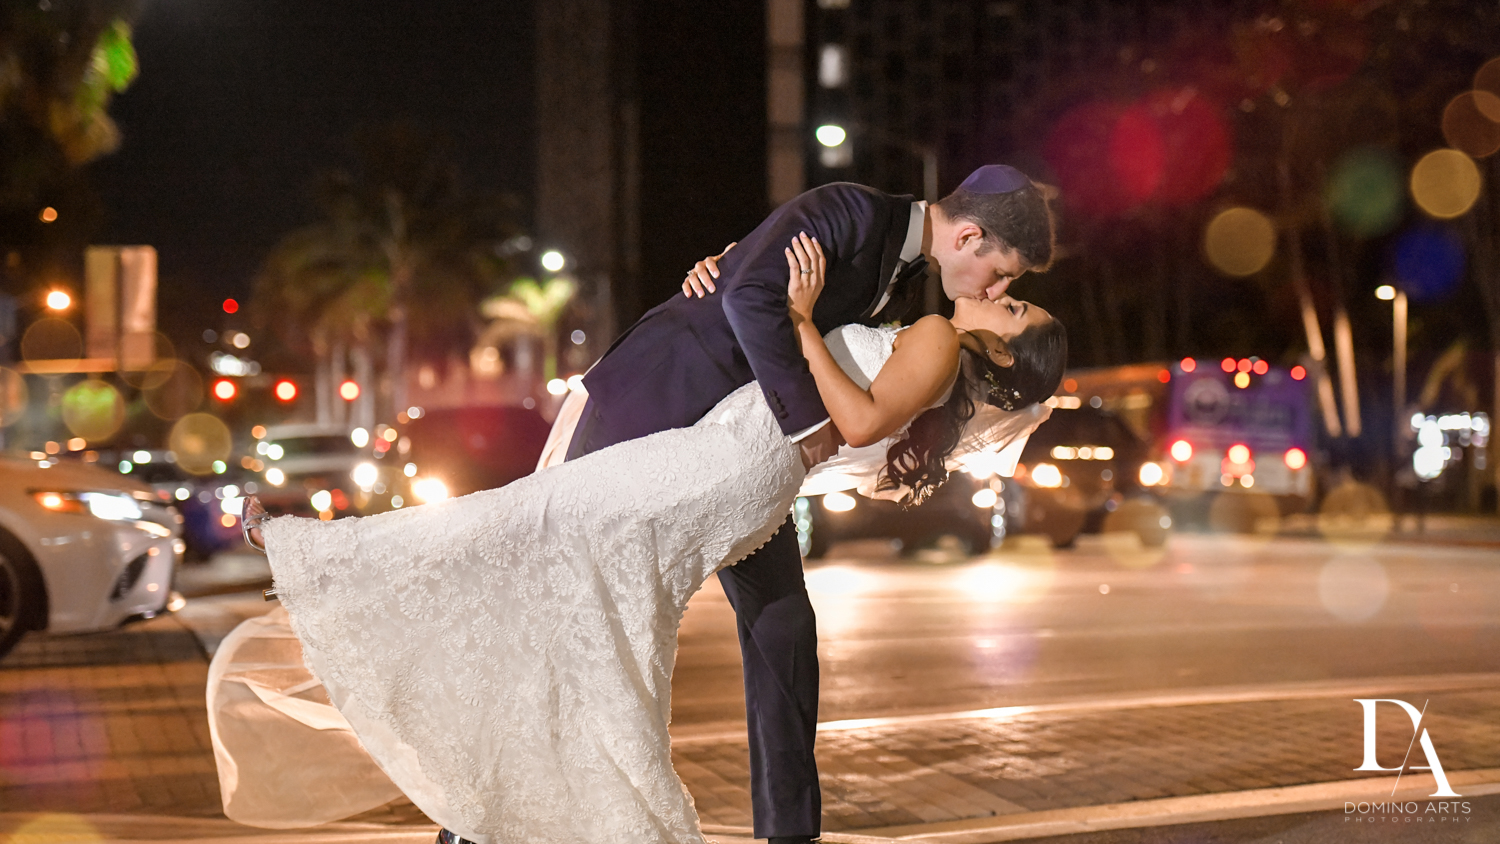 kiss at Classic Miami Beach Wedding at Temple Emanu-El and Emanuel Luxury Venue by Domino Arts Photography